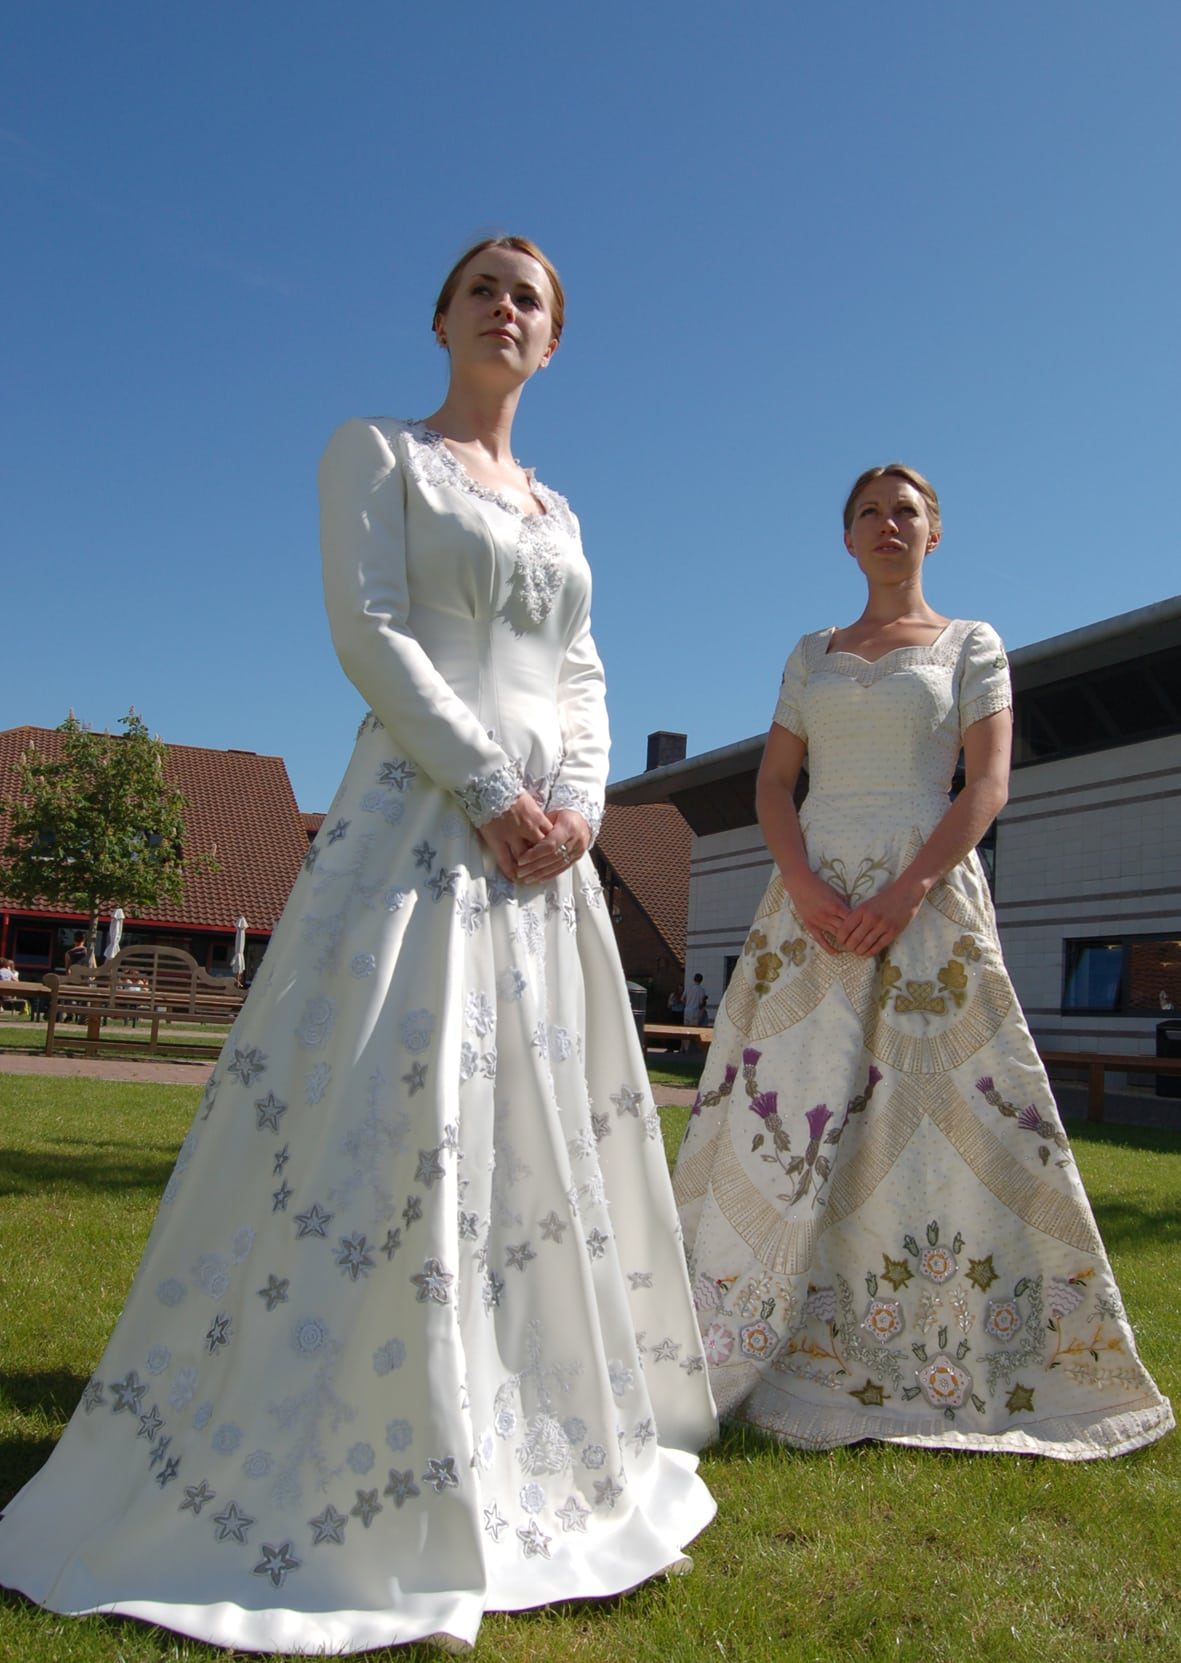 Students create intricate replicas of the Queen's coronation and wedding dress